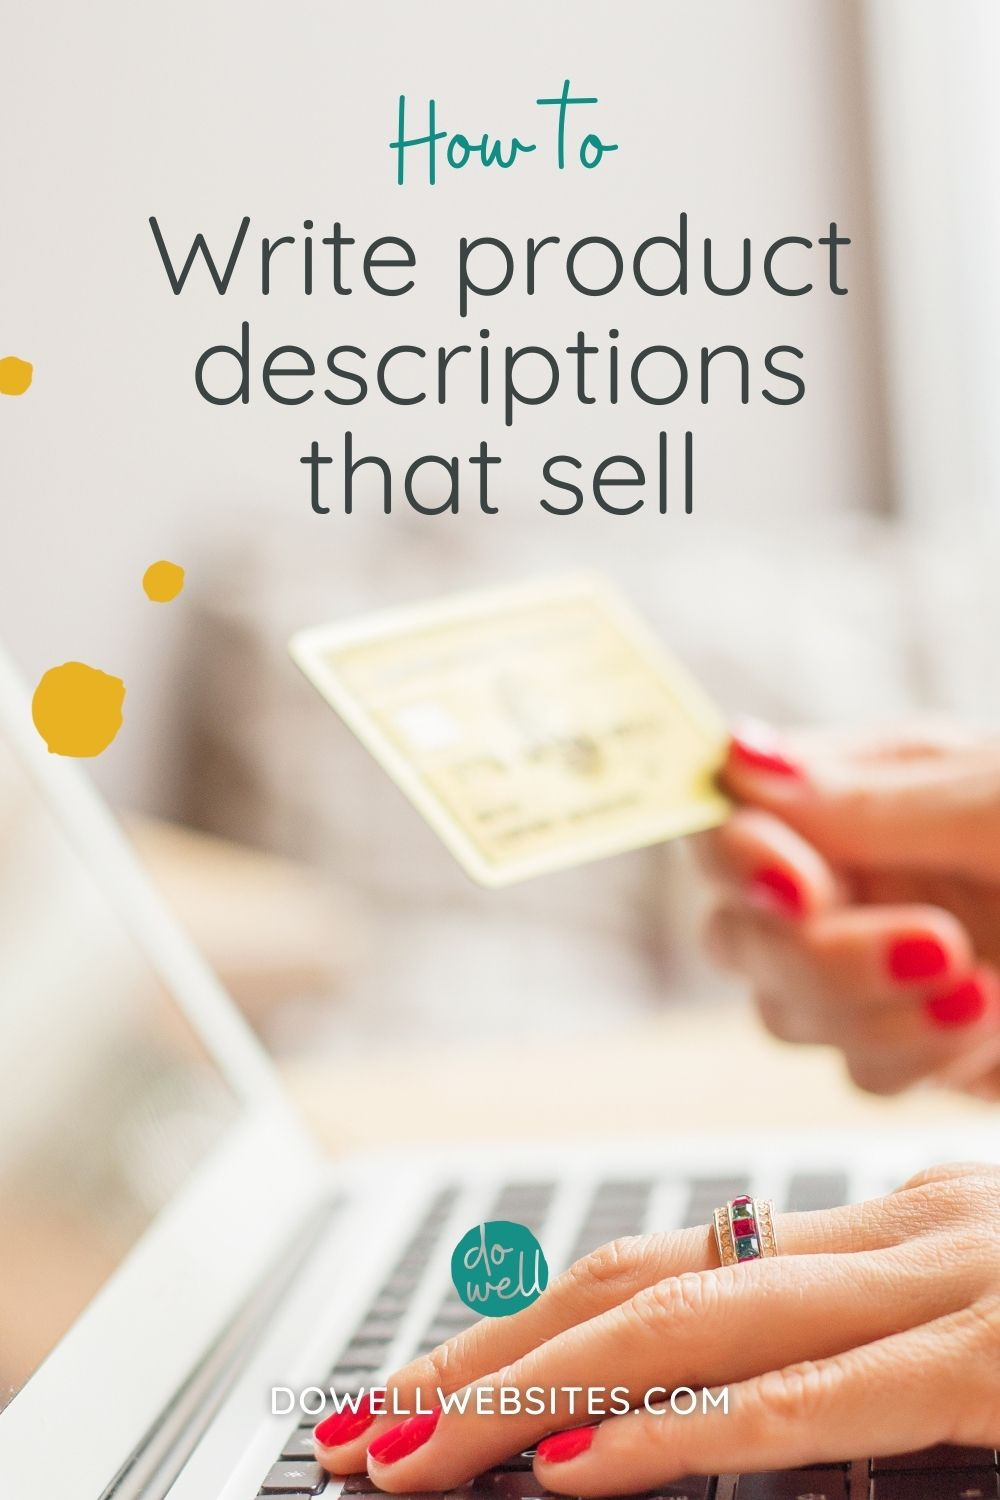 Product descriptions DO matter! Learn 5 things you can do when writing your product descriptions to help motivate your audience to buy what you're selling.